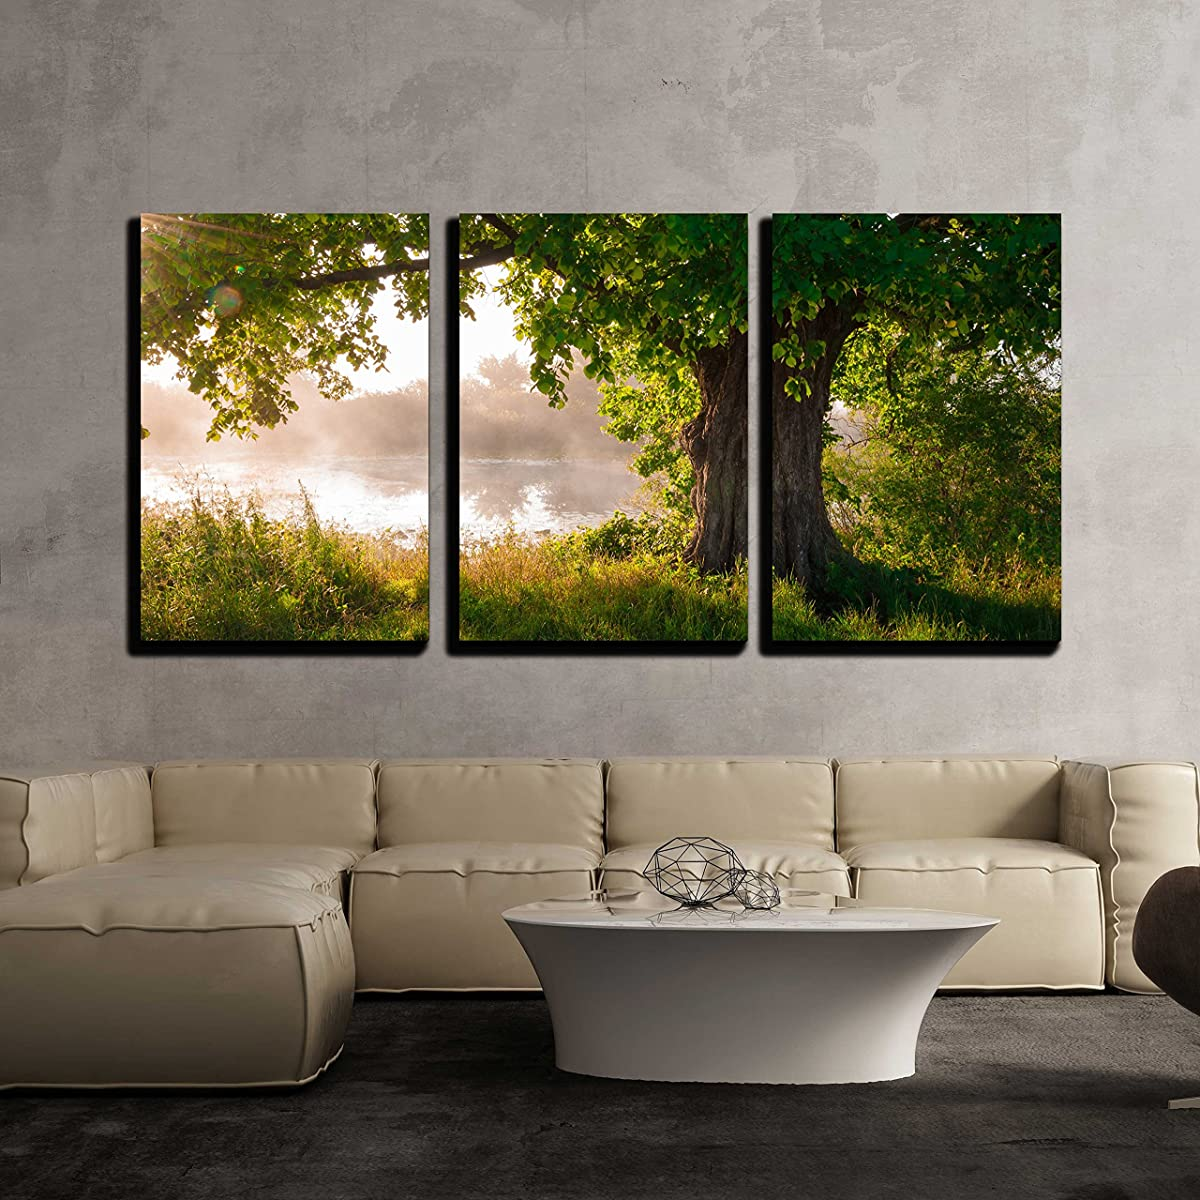 """wall26 - 3 Piece Canvas Wall Art - Oak Tree in Full Leaf in Summer Standing Alone - Modern Home Decor Stretched and Framed Ready to Hang - 24""""x36""""x3 Panels"""